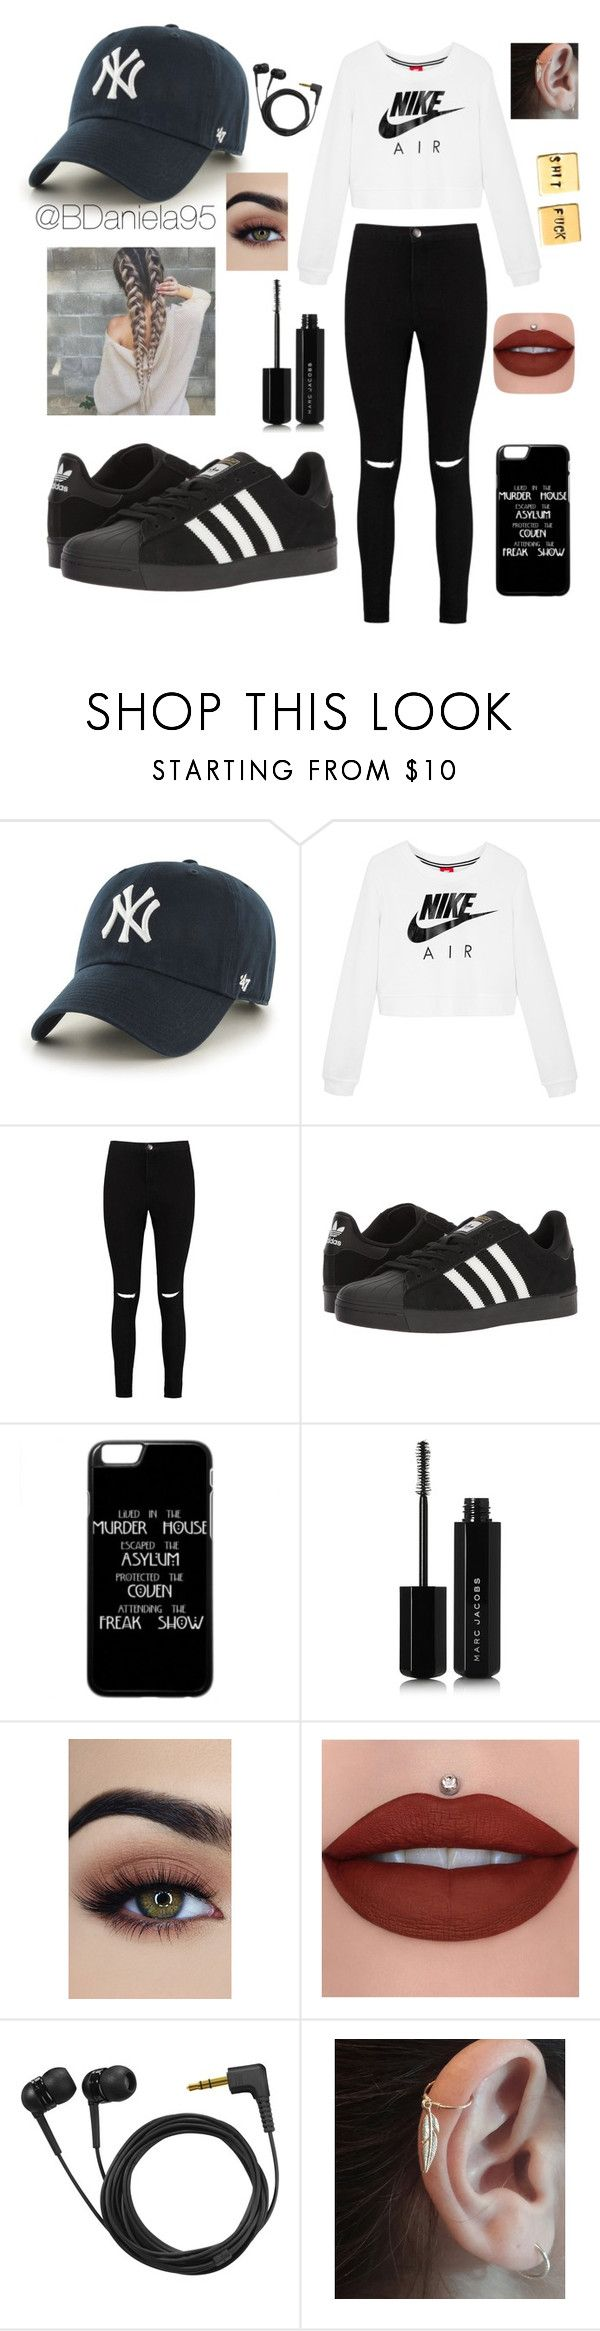 """""""Untitled #241"""" by daniela95140 on Polyvore featuring '47 Brand, NIKE, Boohoo, adidas, Marc Jacobs and Sennheiser"""